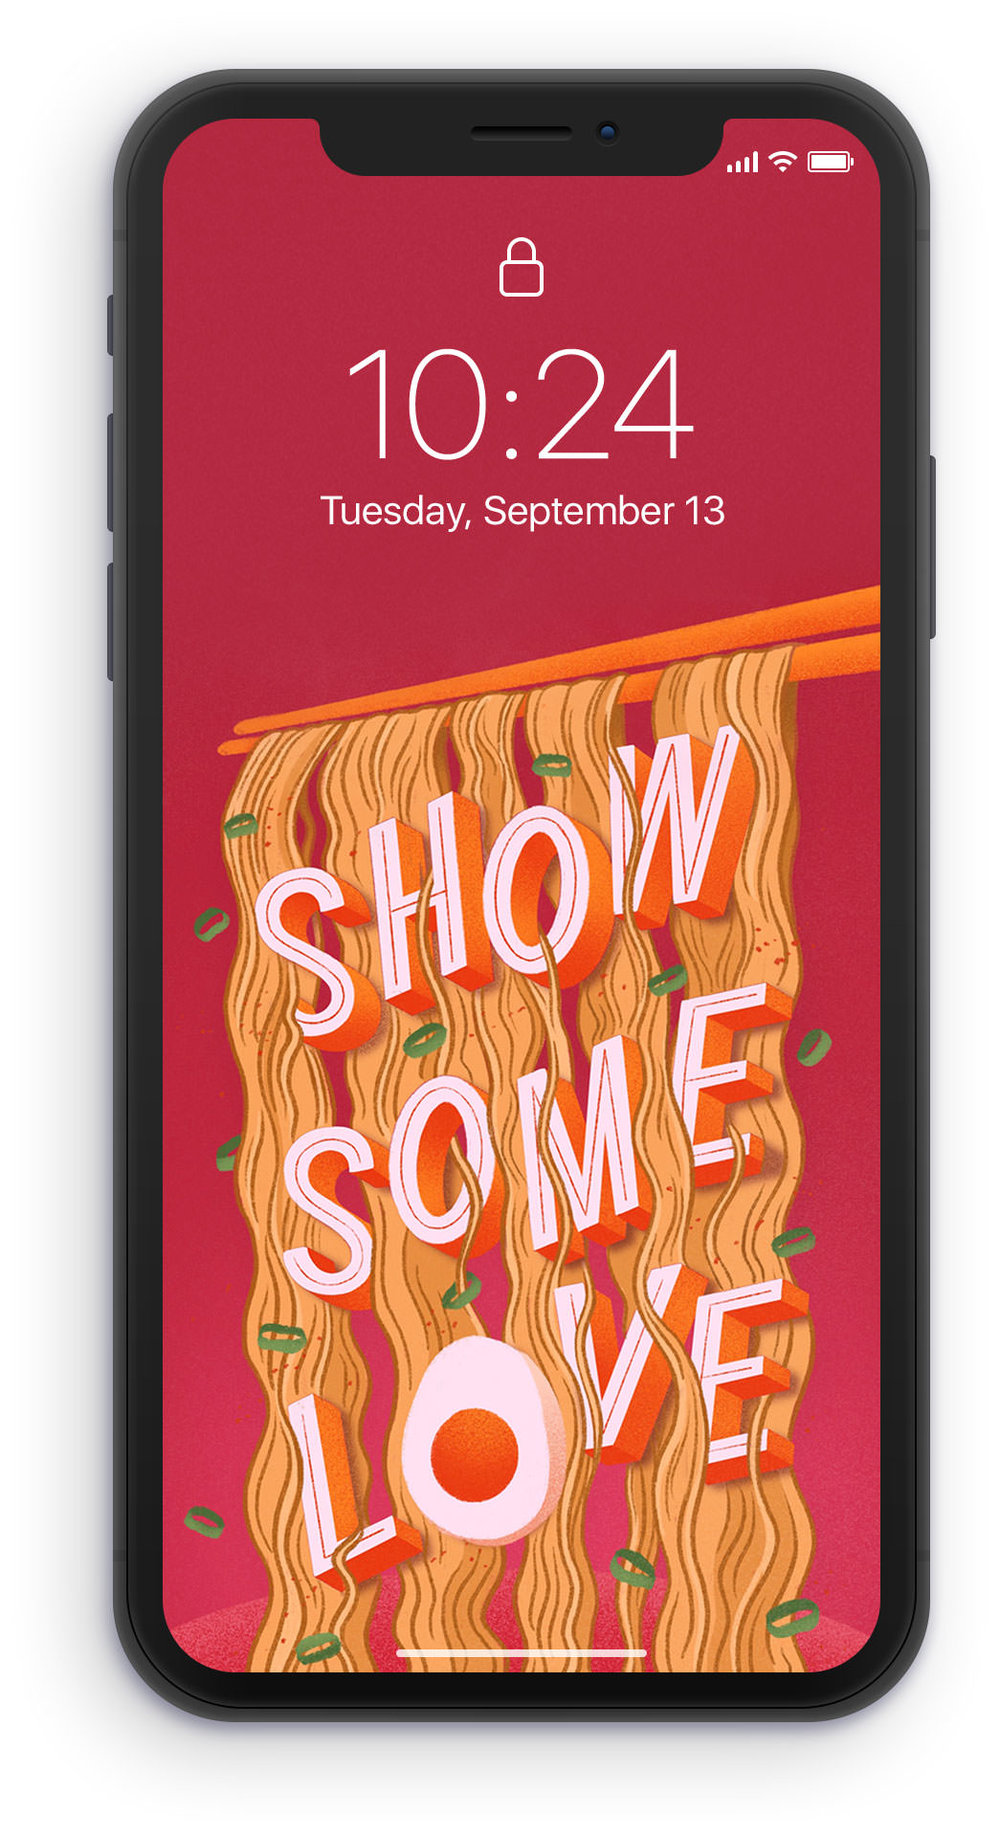 show-some-love-phone-wallpaper